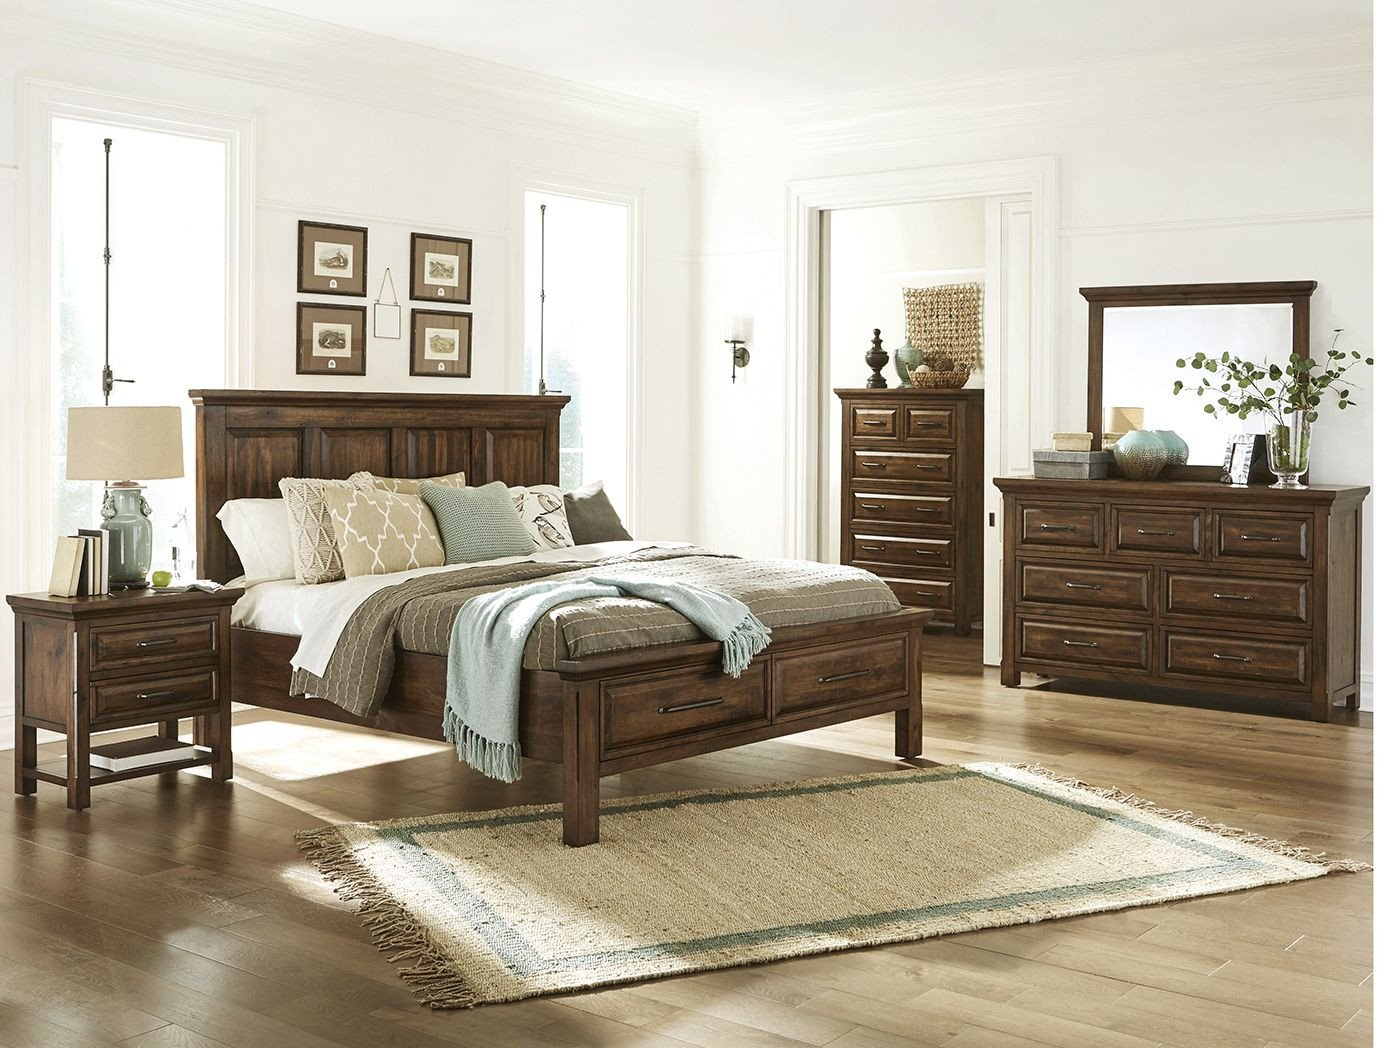 King Size Oak Bedroom Set Unique Hillcrest King Panel Storage Bed